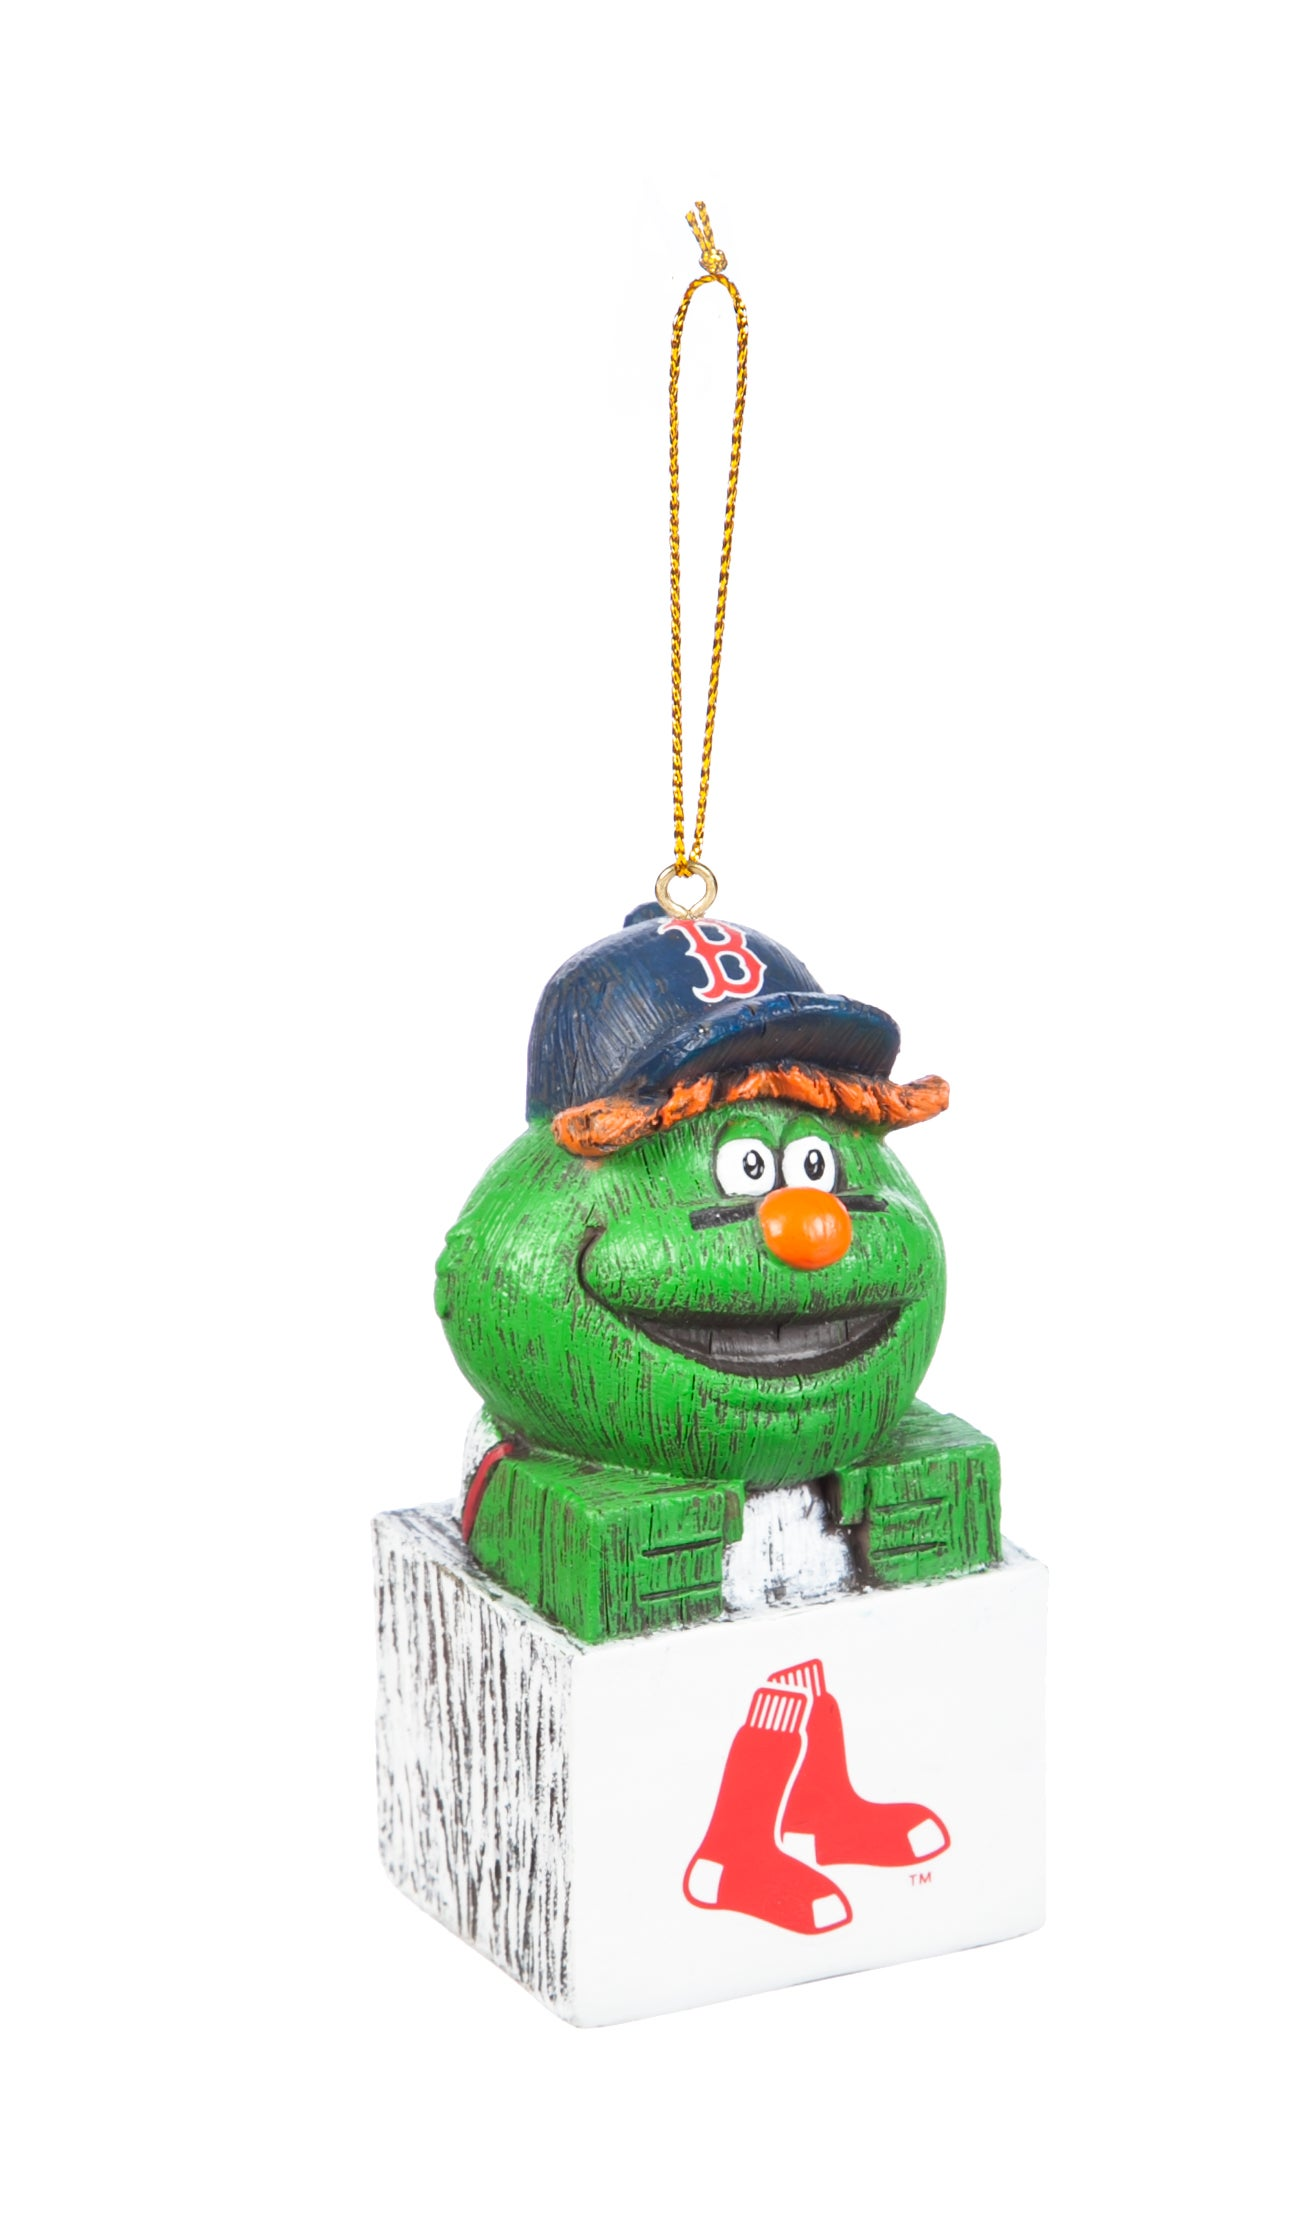 Boston Red Sox Mascot Ornament